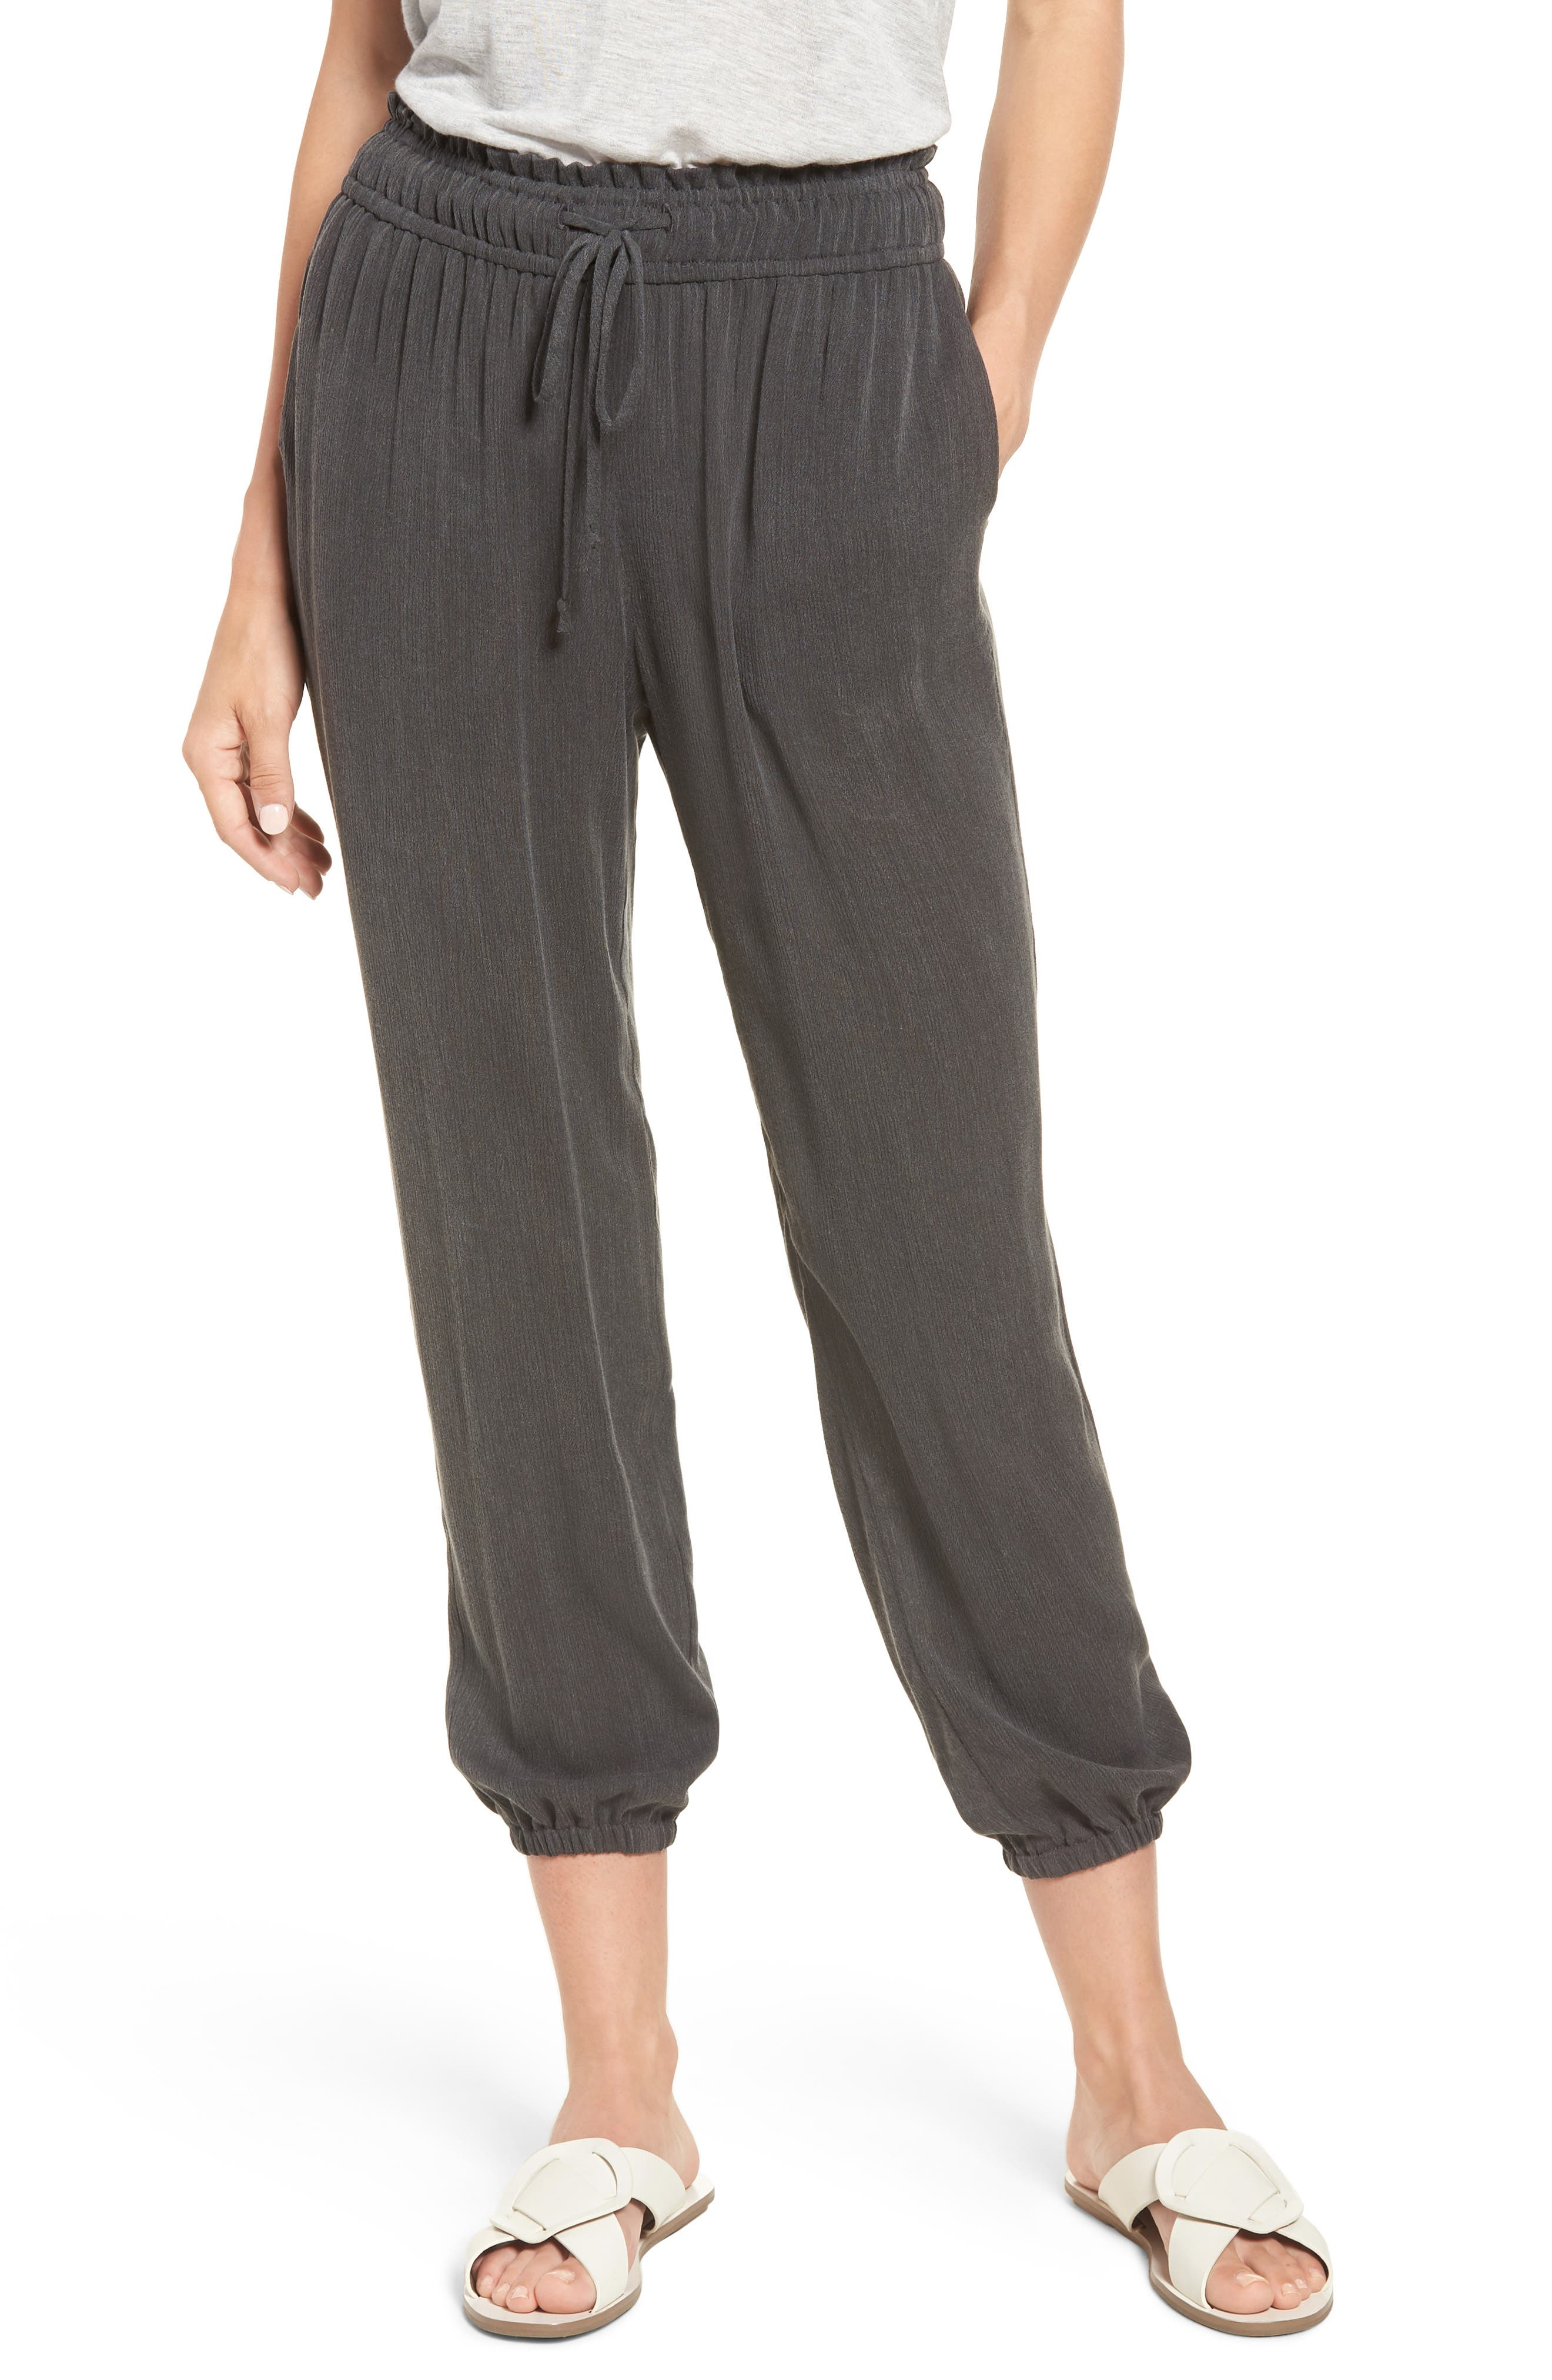 x Hi Sugarplum! Hanalei Soft Jogger Pants,                             Main thumbnail 1, color,                             001